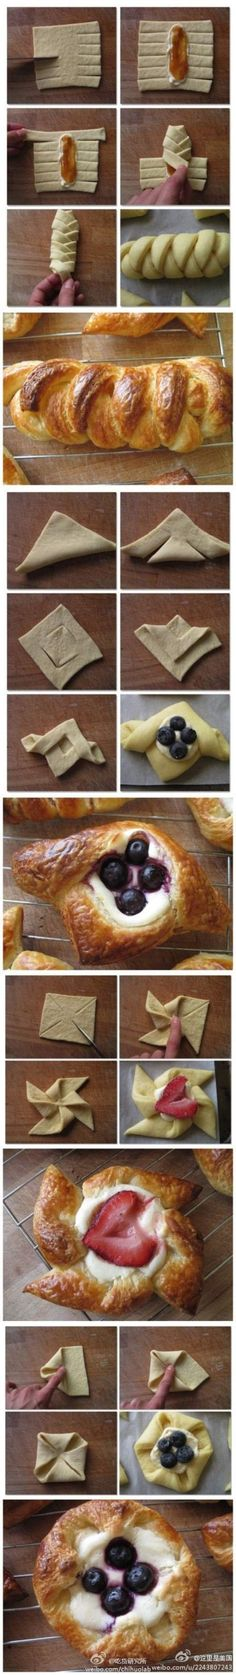 How to make beautiful Pastries!!!! Awesome Food Hacks That Will Simplify Your Life Photo